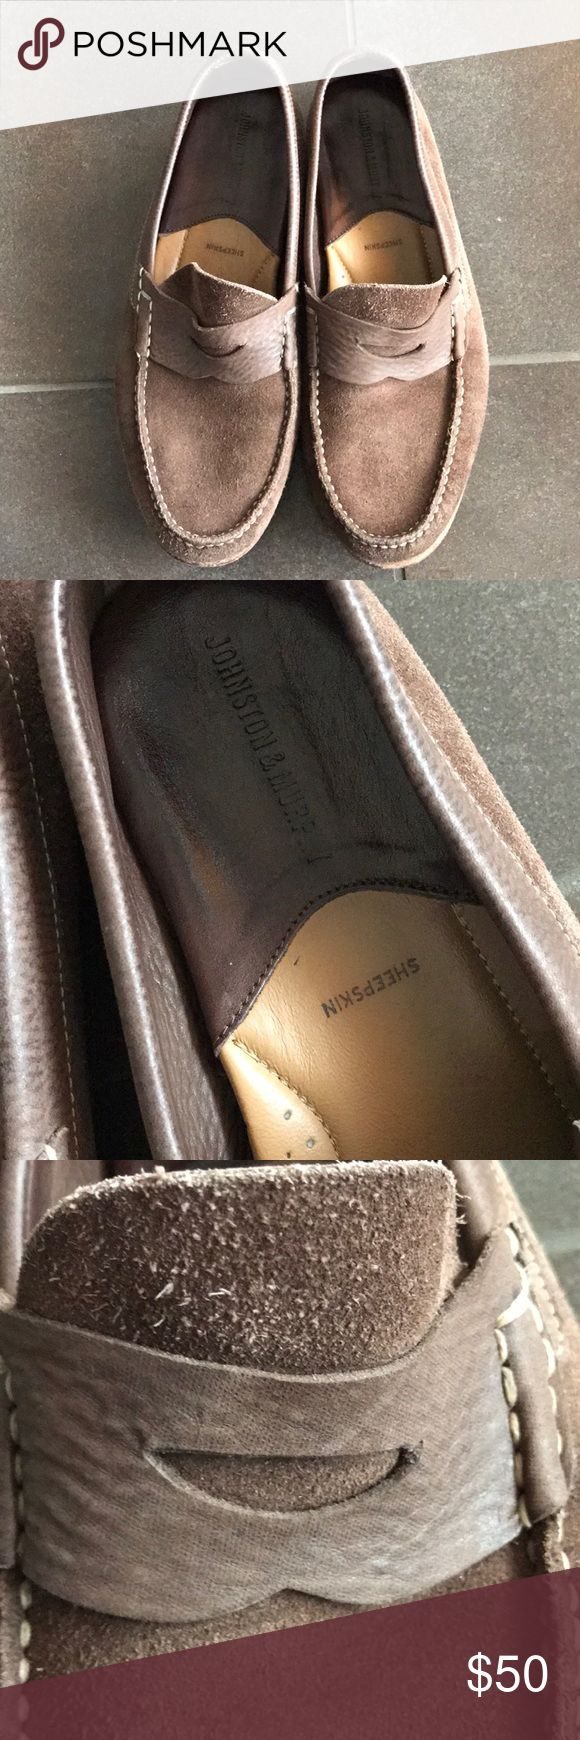 Johnston & Murphy Sheepskin Suede Leather Loafers Johnston and Murphy brown sheepskin suede leather loafers. Men's size 10. These have been worn but still look very nice! Shoes Loafers & Slip-Ons